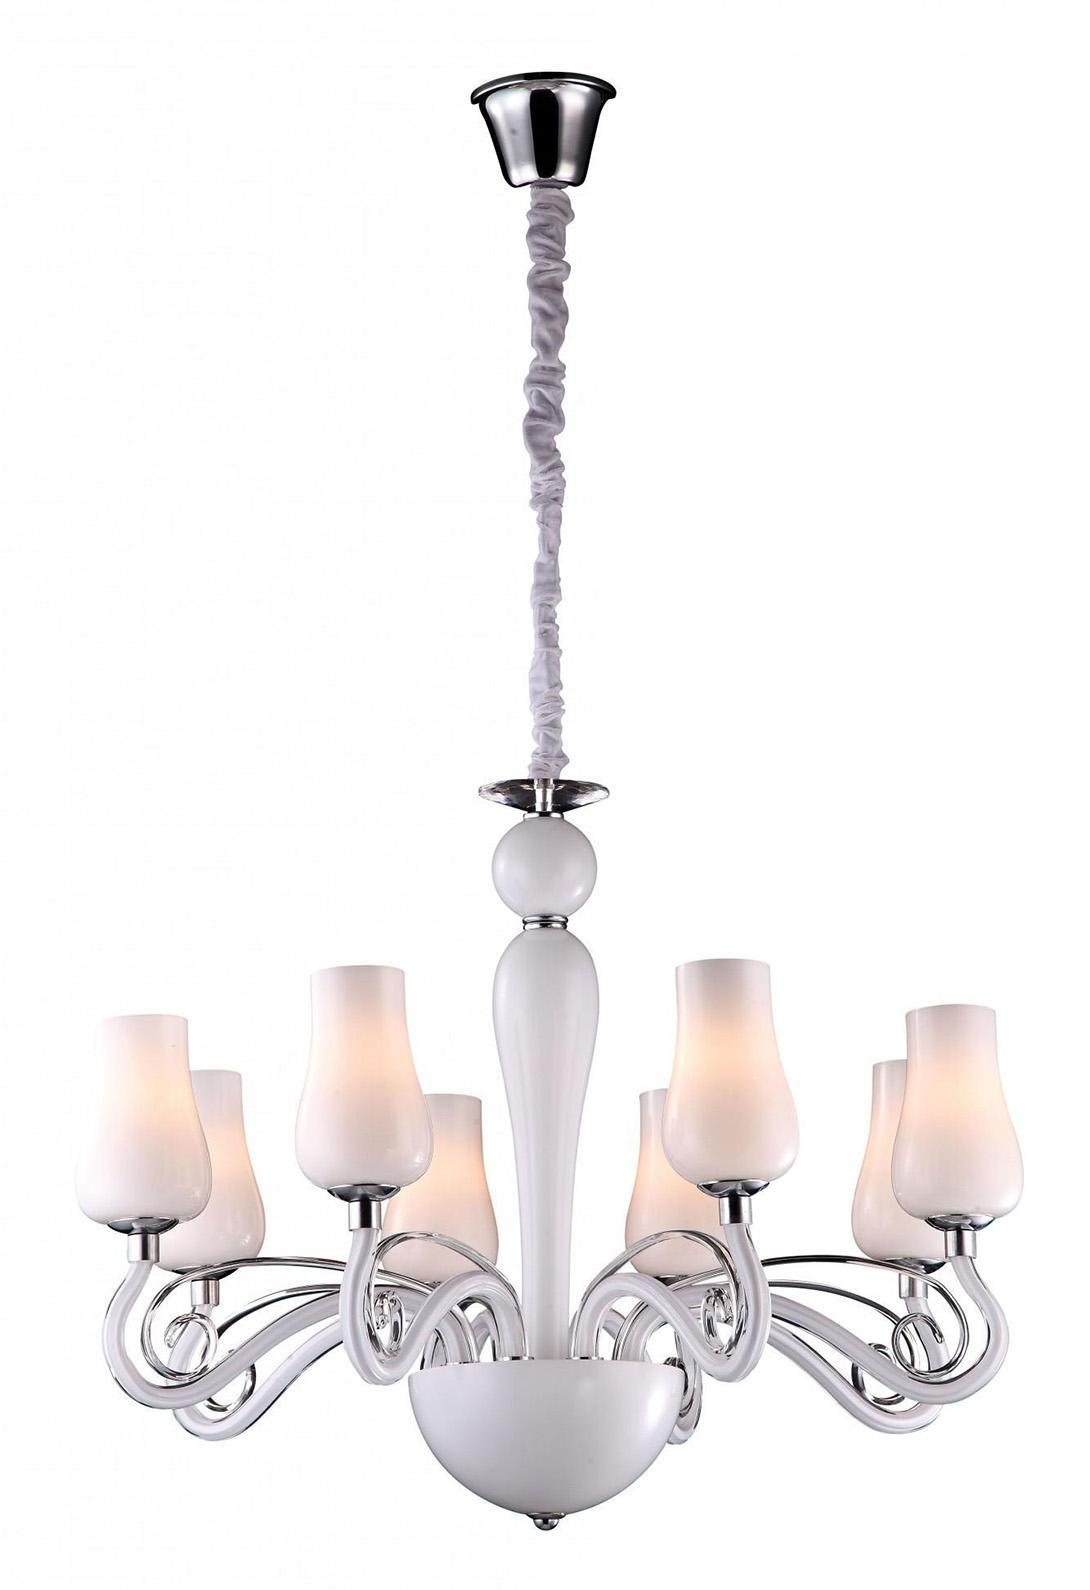 Люстра Arte lamp A8110lm-8wh подвесная люстра arte lamp biancaneve a8110lm 8wh